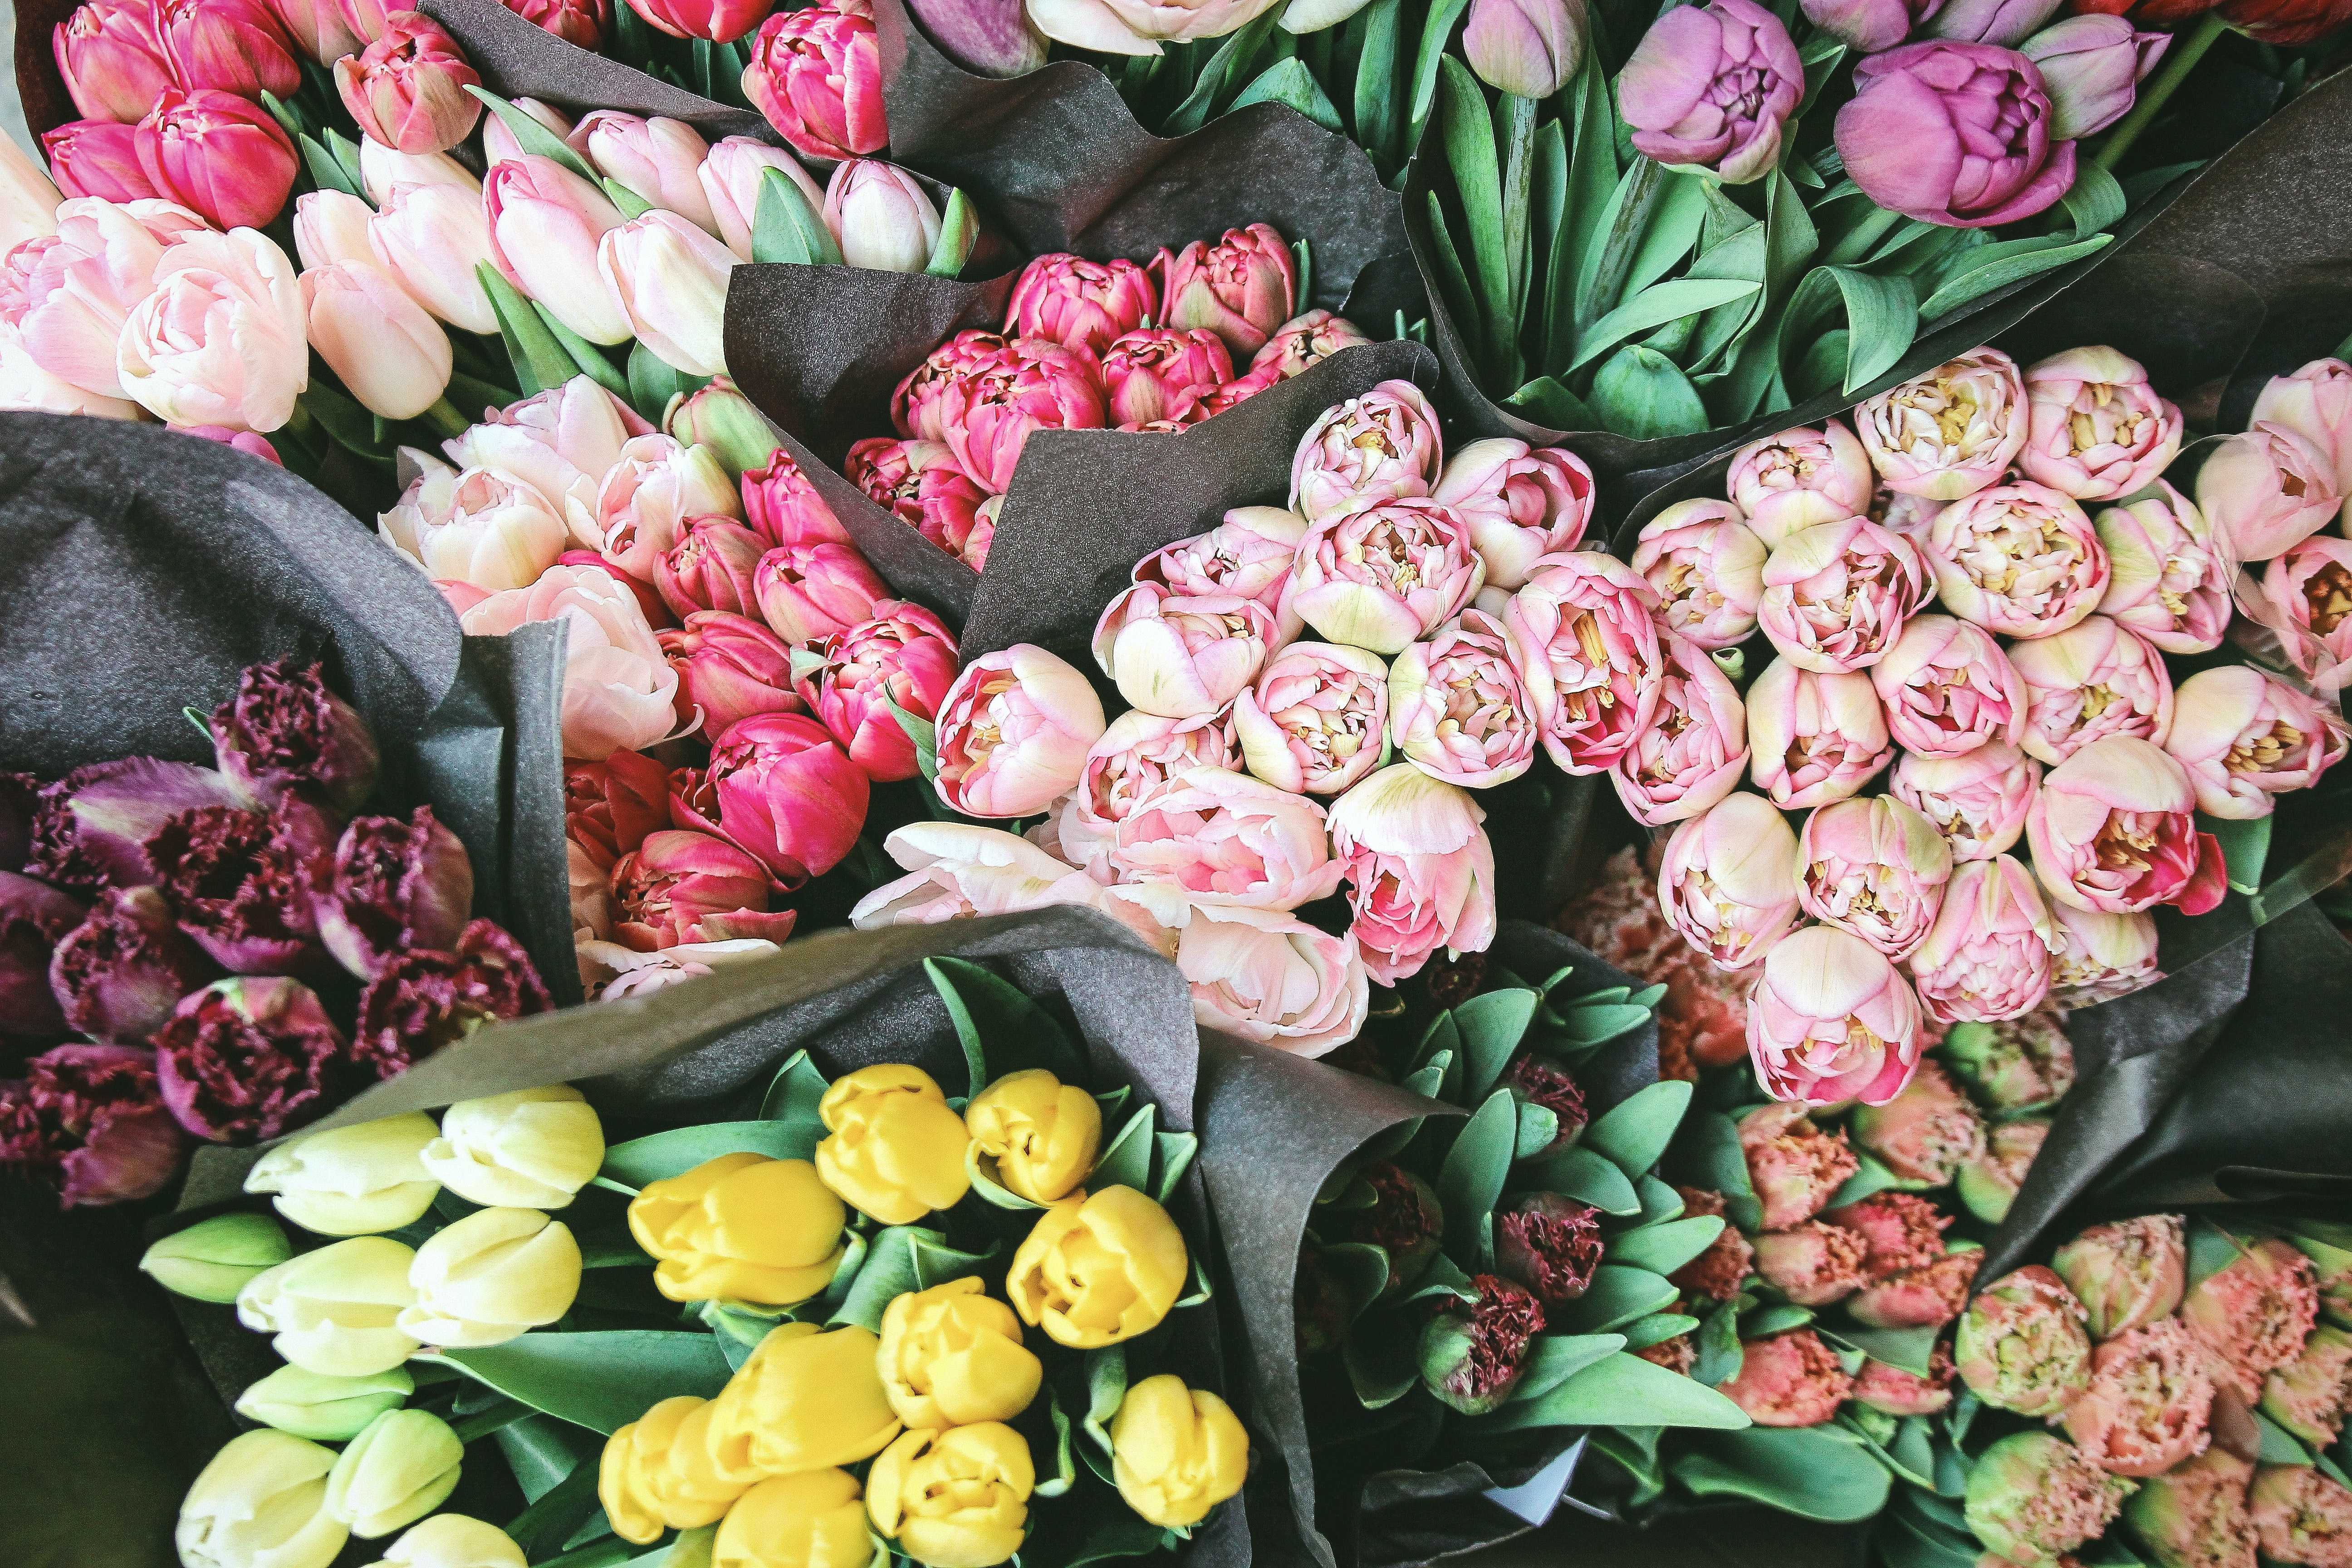 A Singapore florist who has more than 38 years of experience in floral arrangement talks about flower trends in 2020-2021, and gives 4 tips on how to send bouquets during the pandemic.